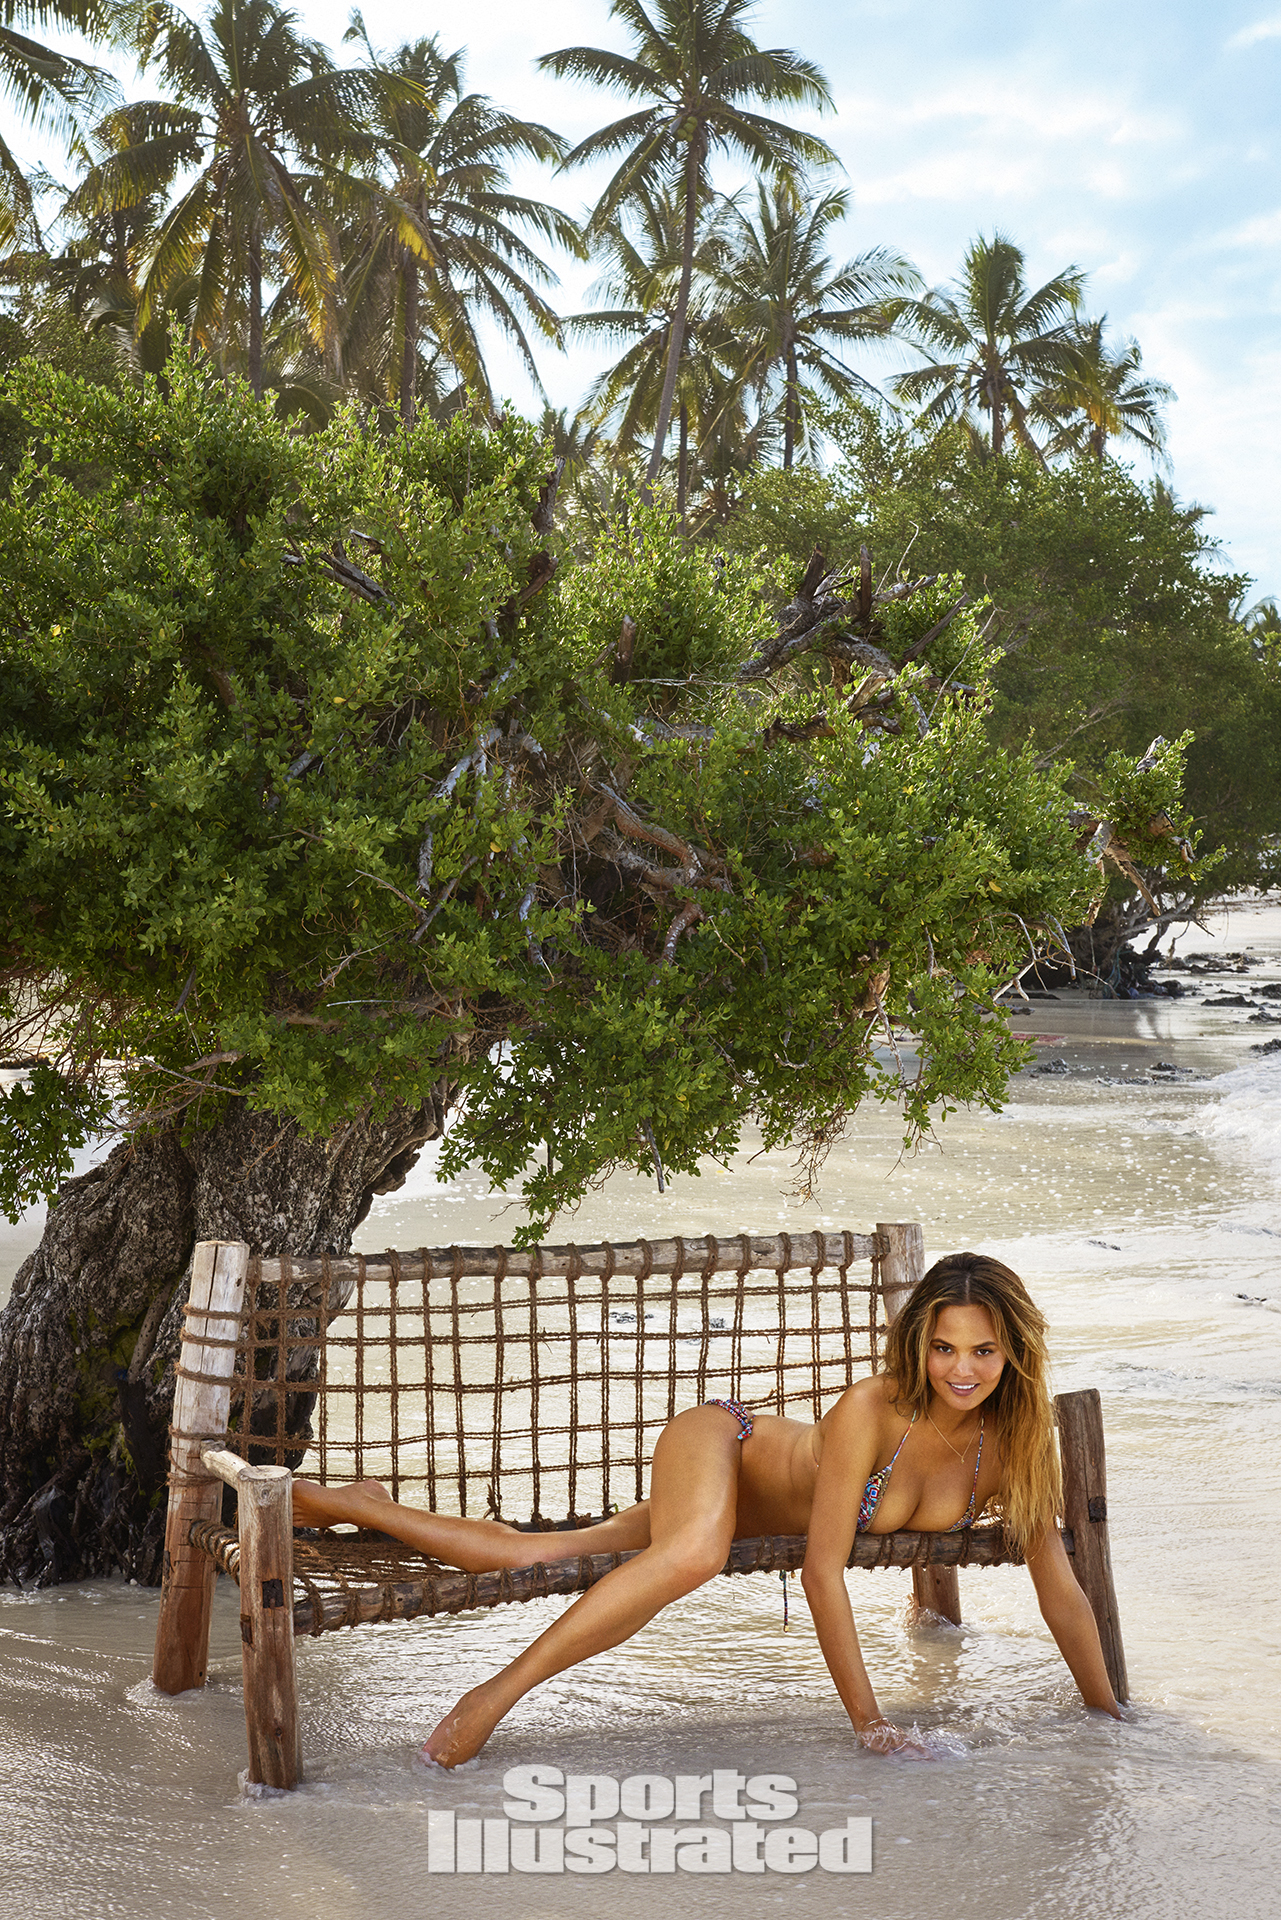 Chrissy Teigen was photographed by Ruven Afanador in Zanzibar. Swimsuit by PHAX.